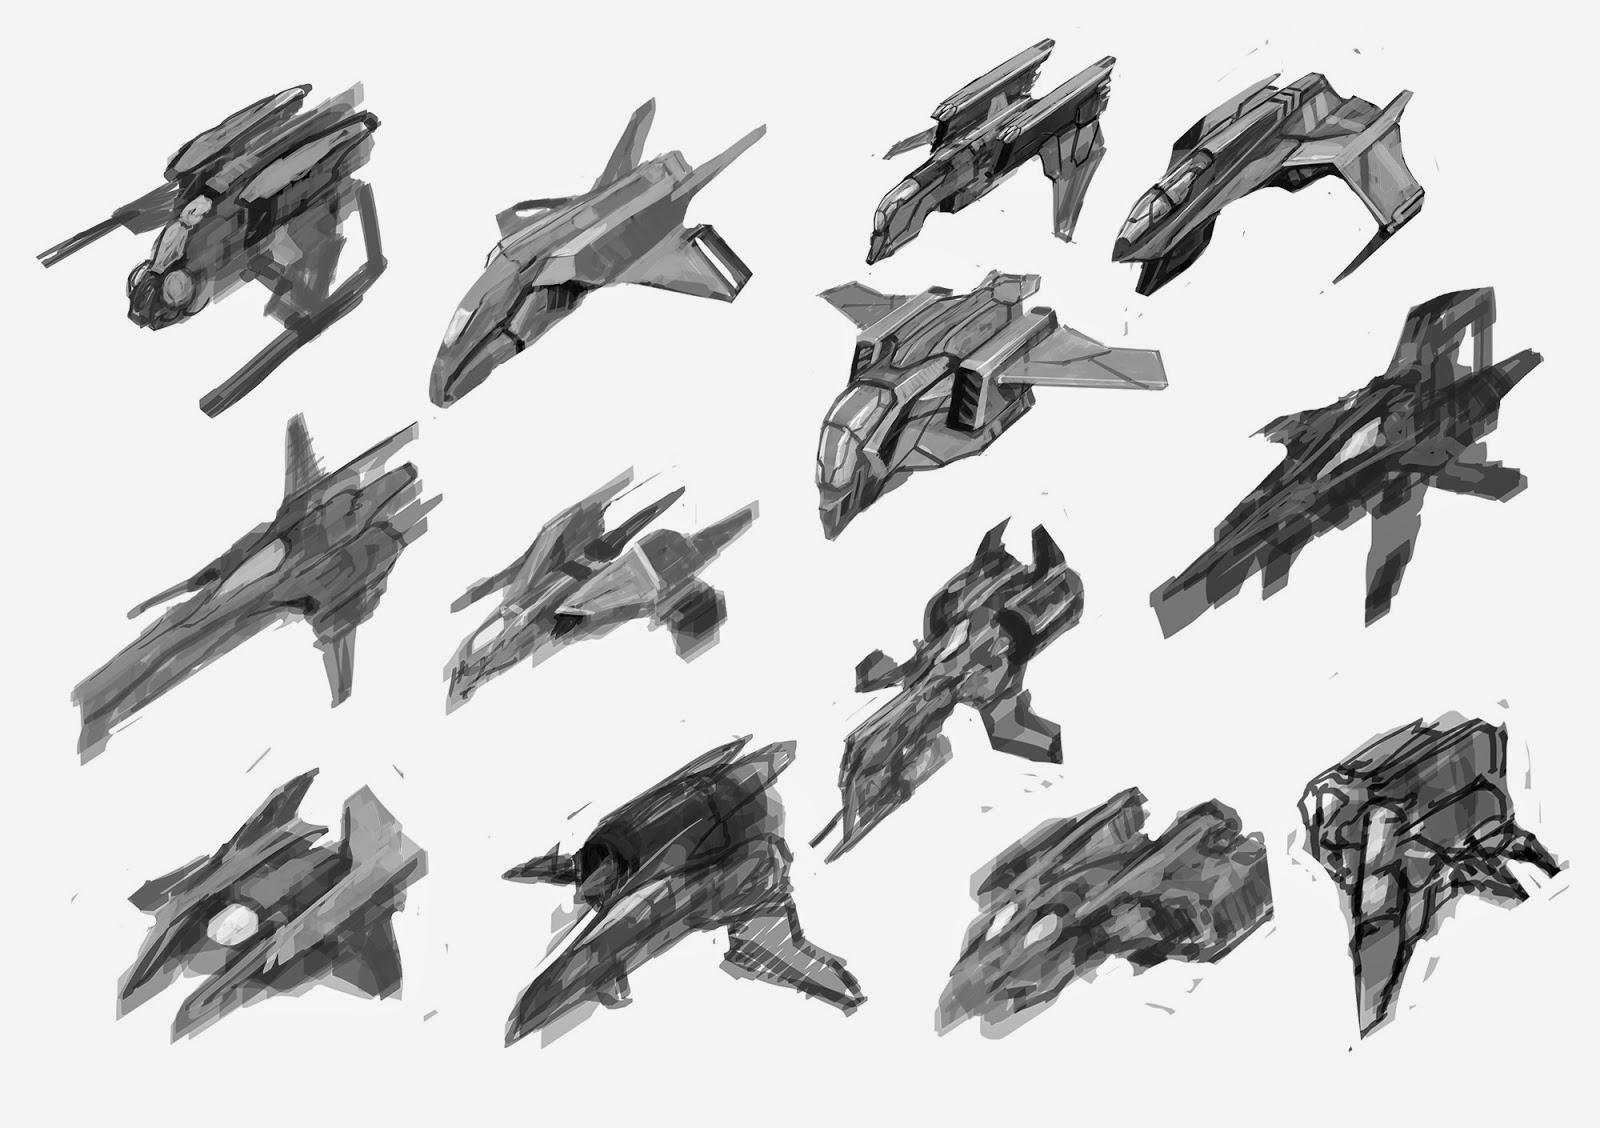 Wip Blog Sci Fi Vehicle Prop Concepts